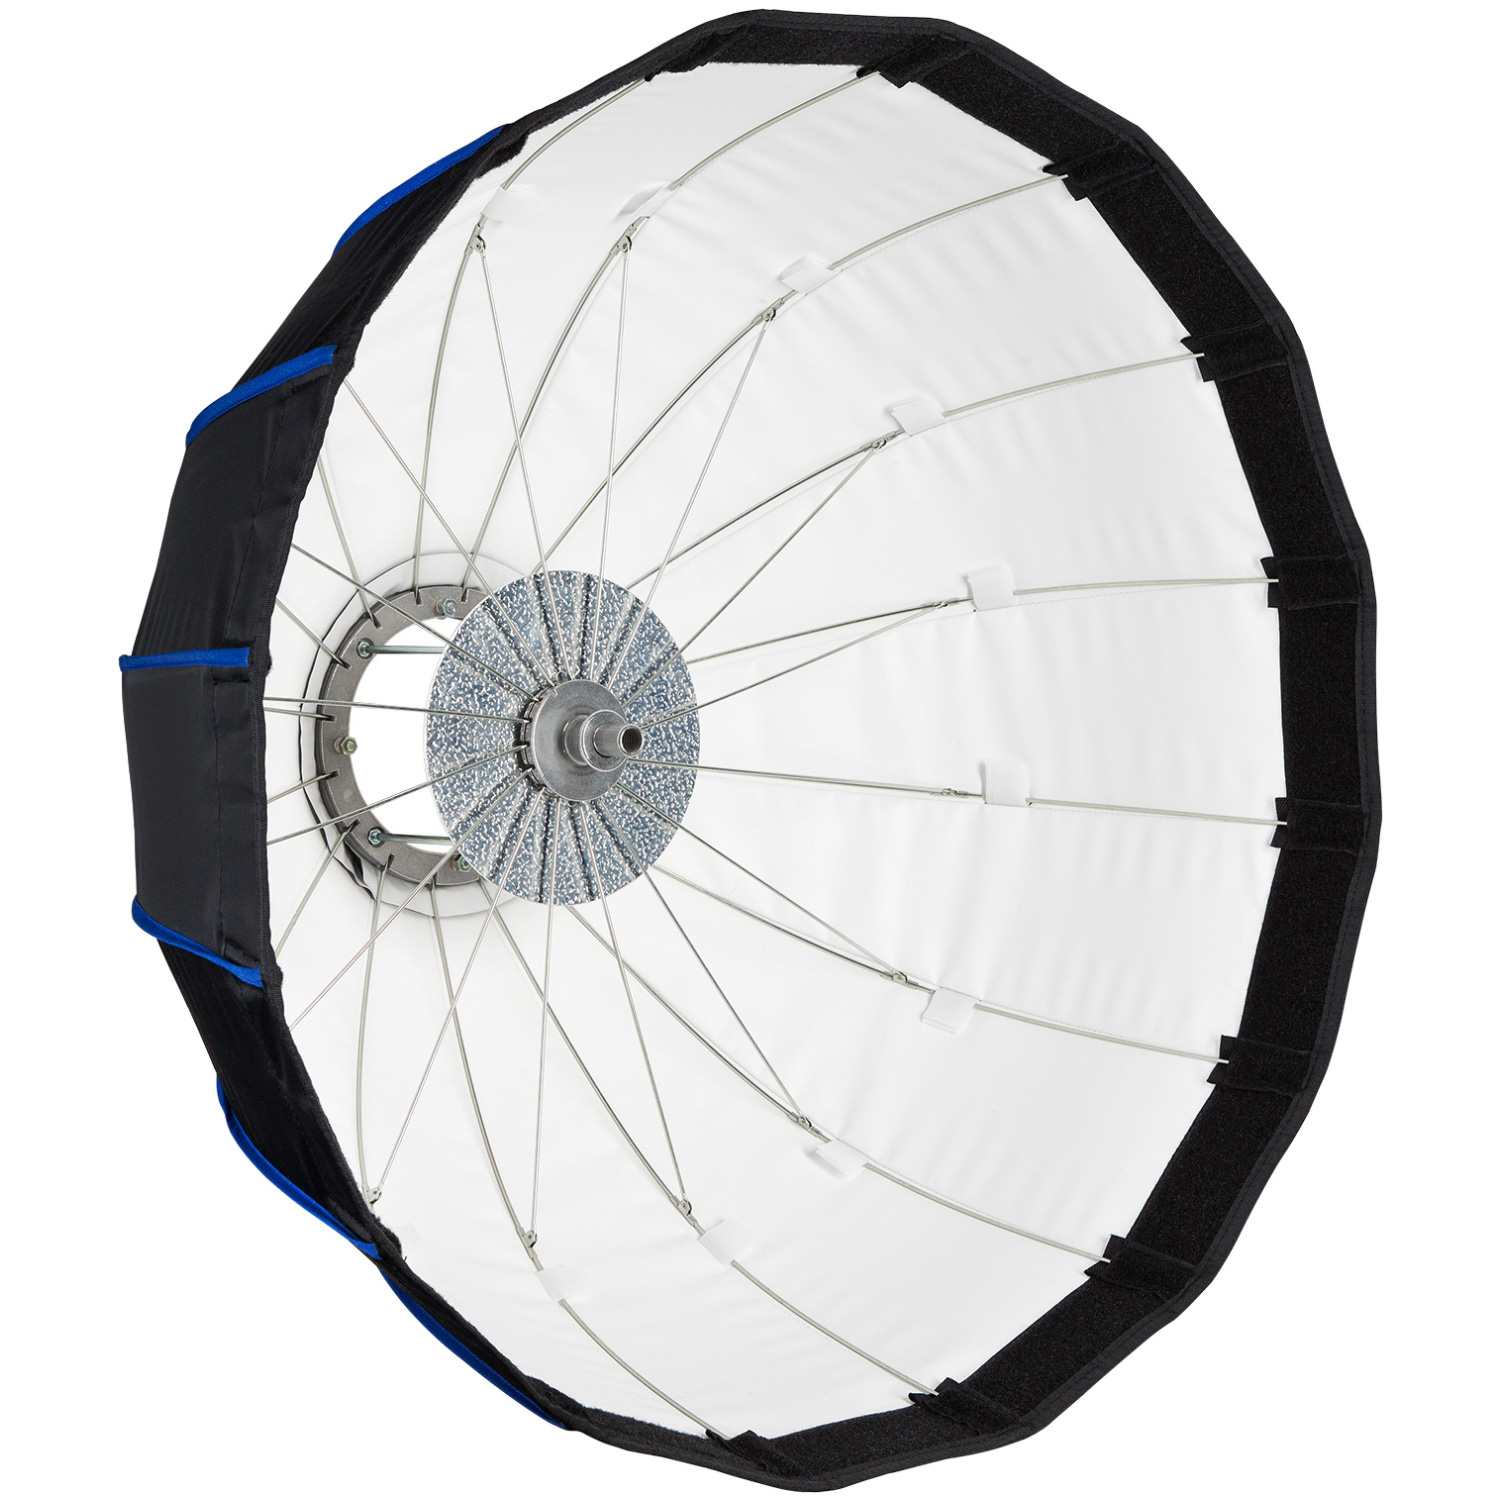 Collapsible Beauty Dish (24-in., Bowens Mount)